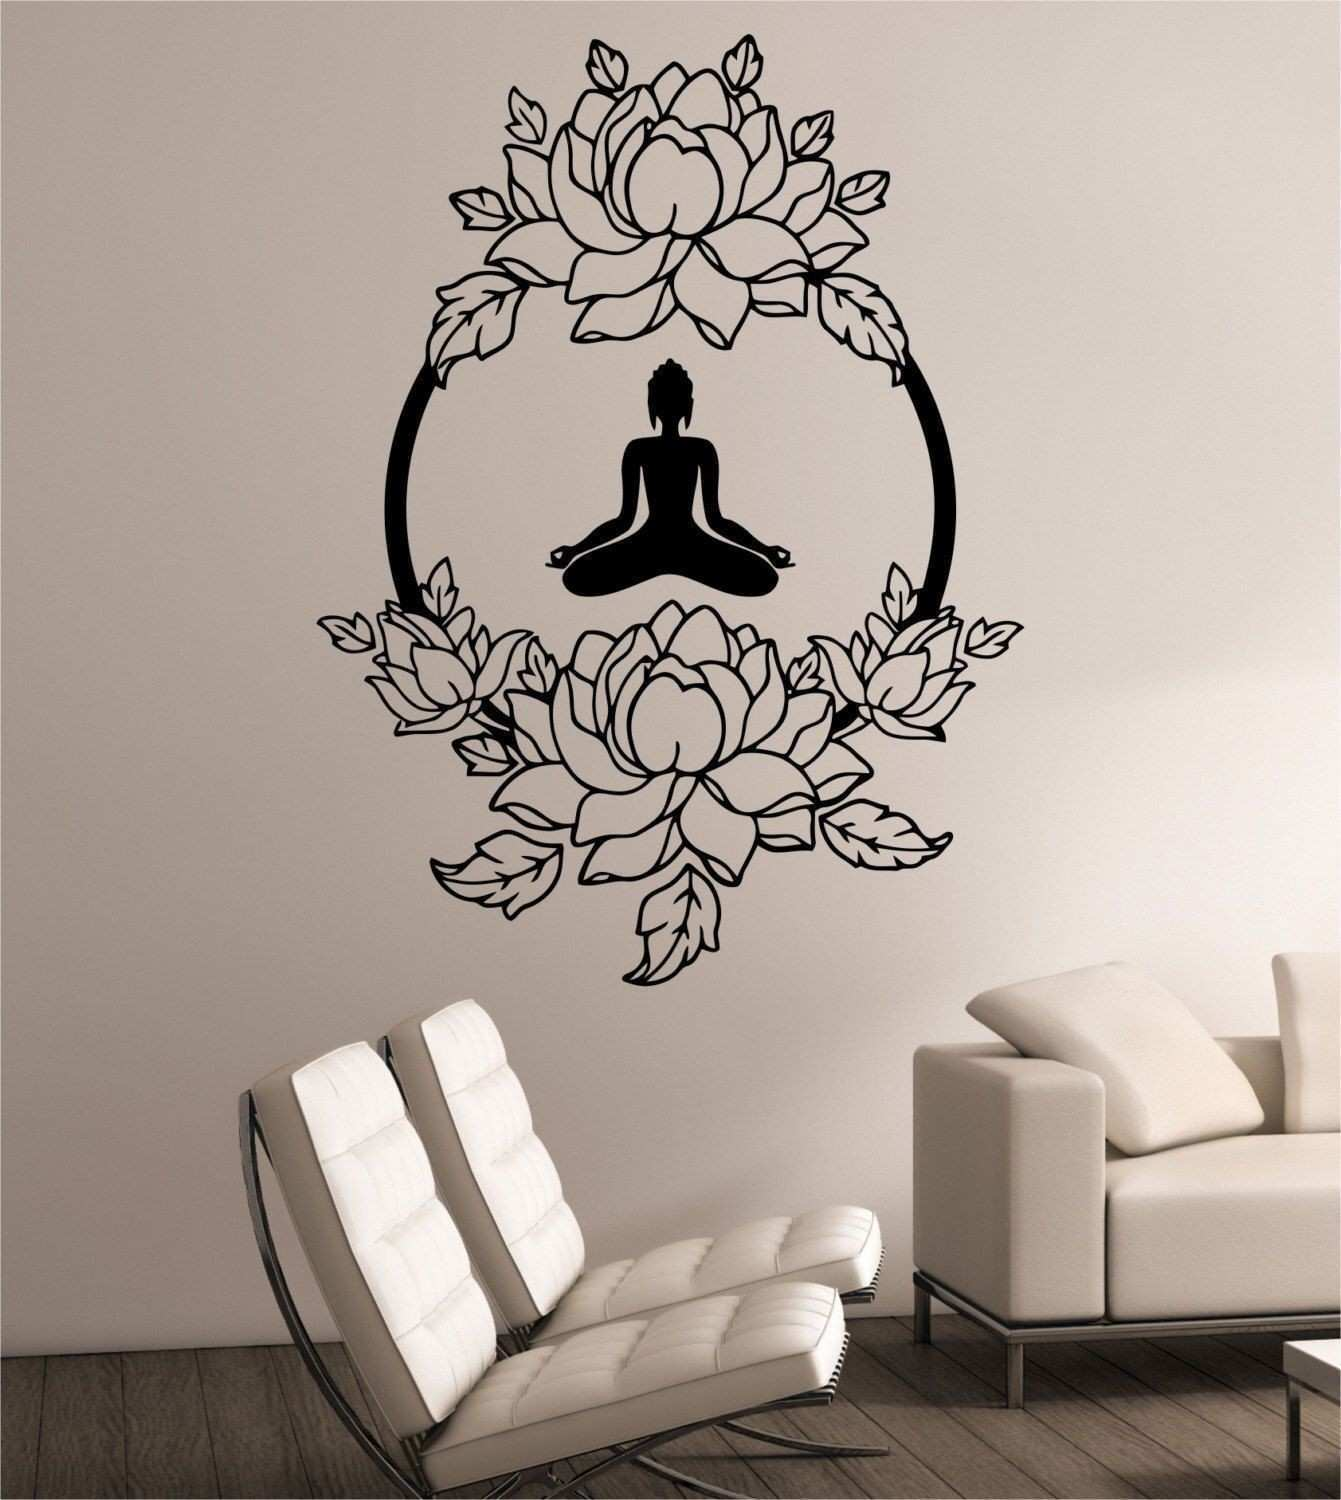 Luxury Create Your Own Wall Decal Quotes